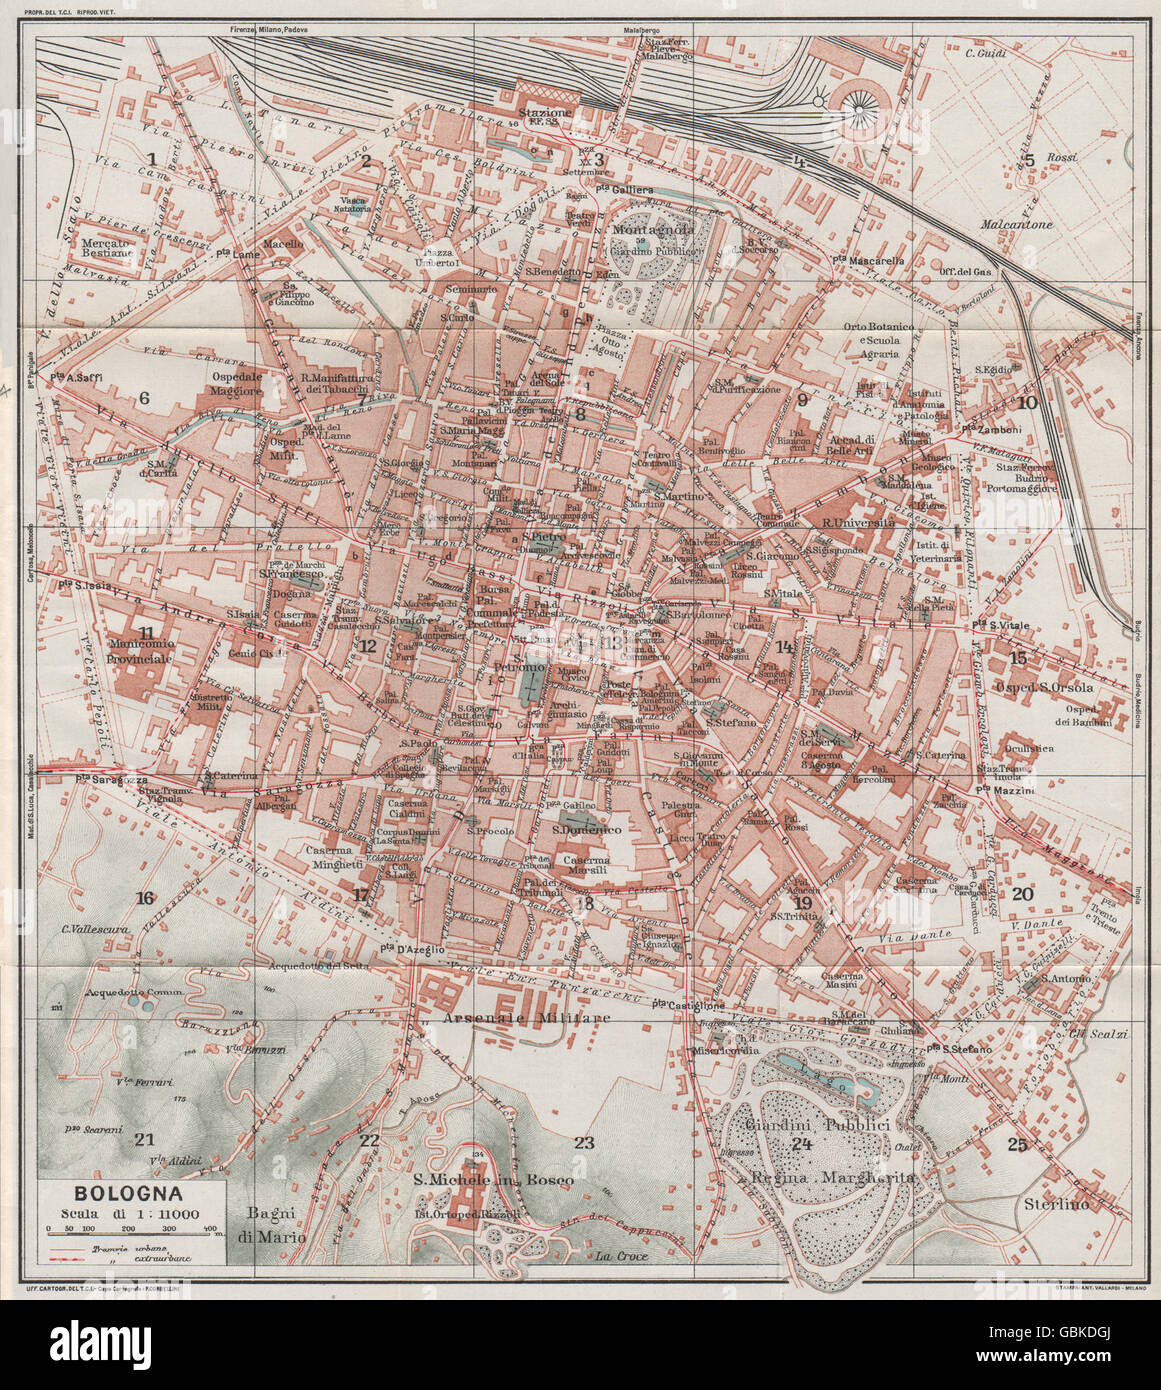 BOLOGNA Vintage town city map plan Italy 1924 Stock Photo